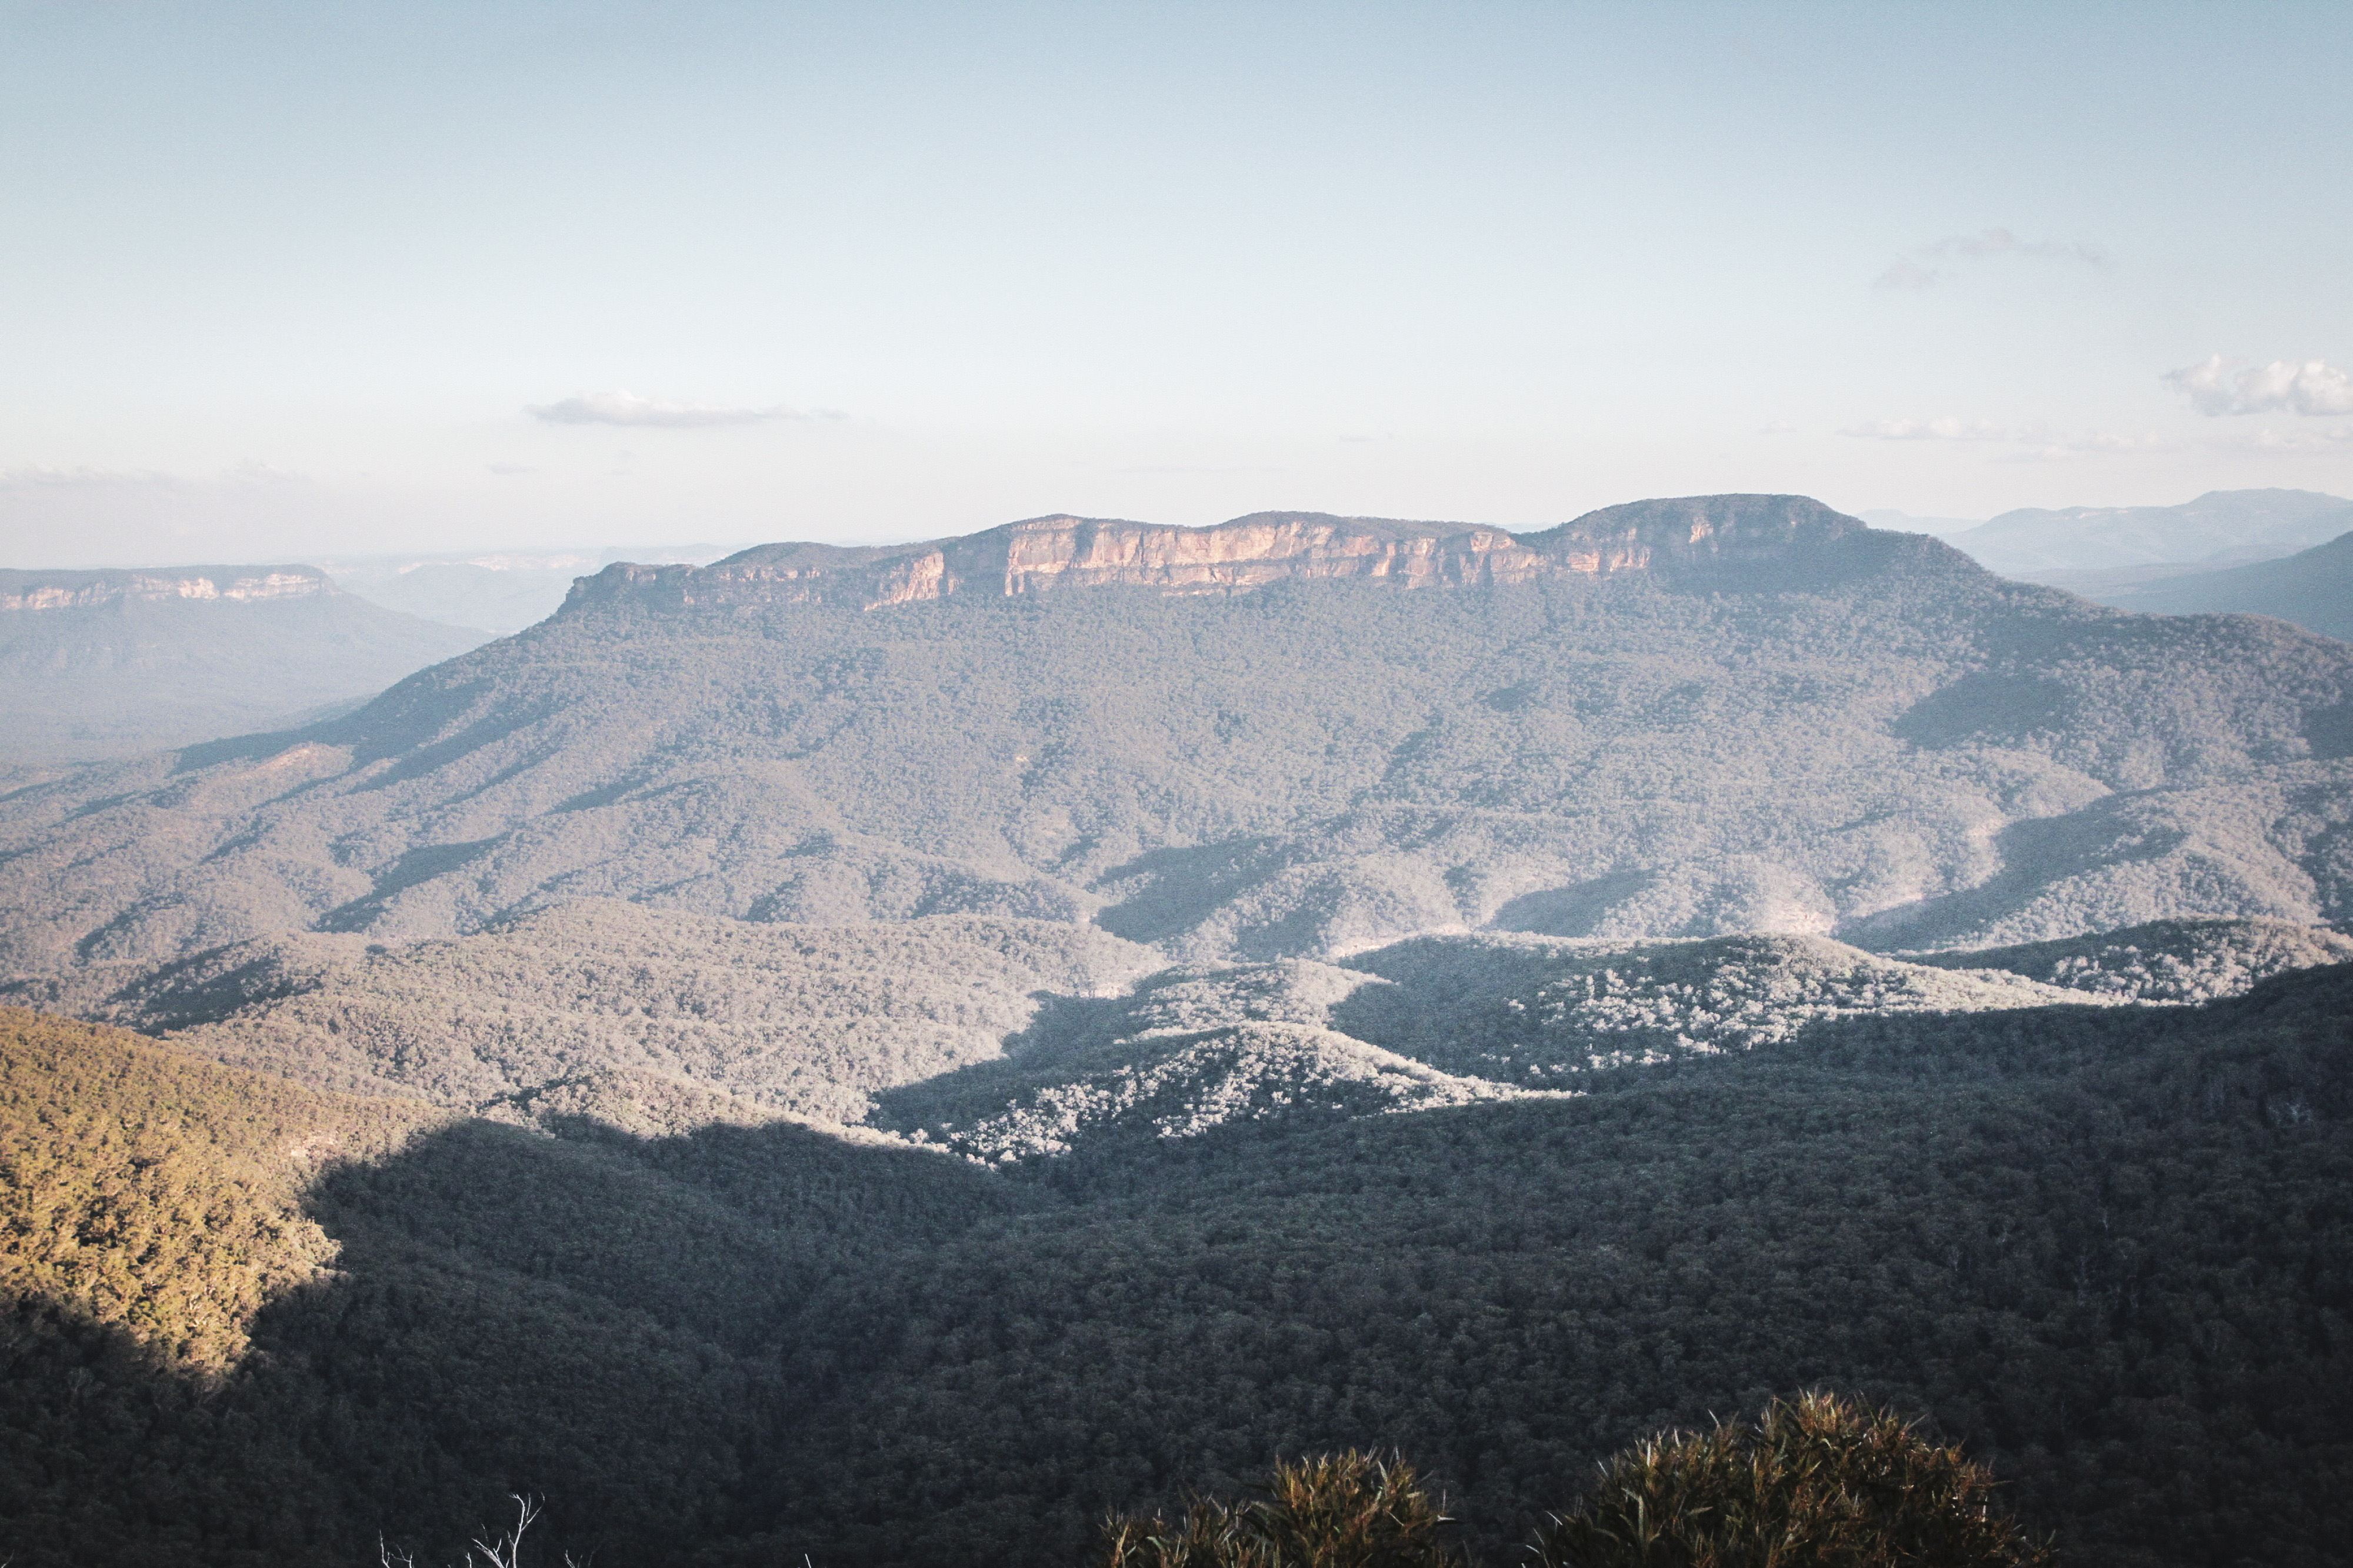 Blue Mountains region. Image: Sportograft.